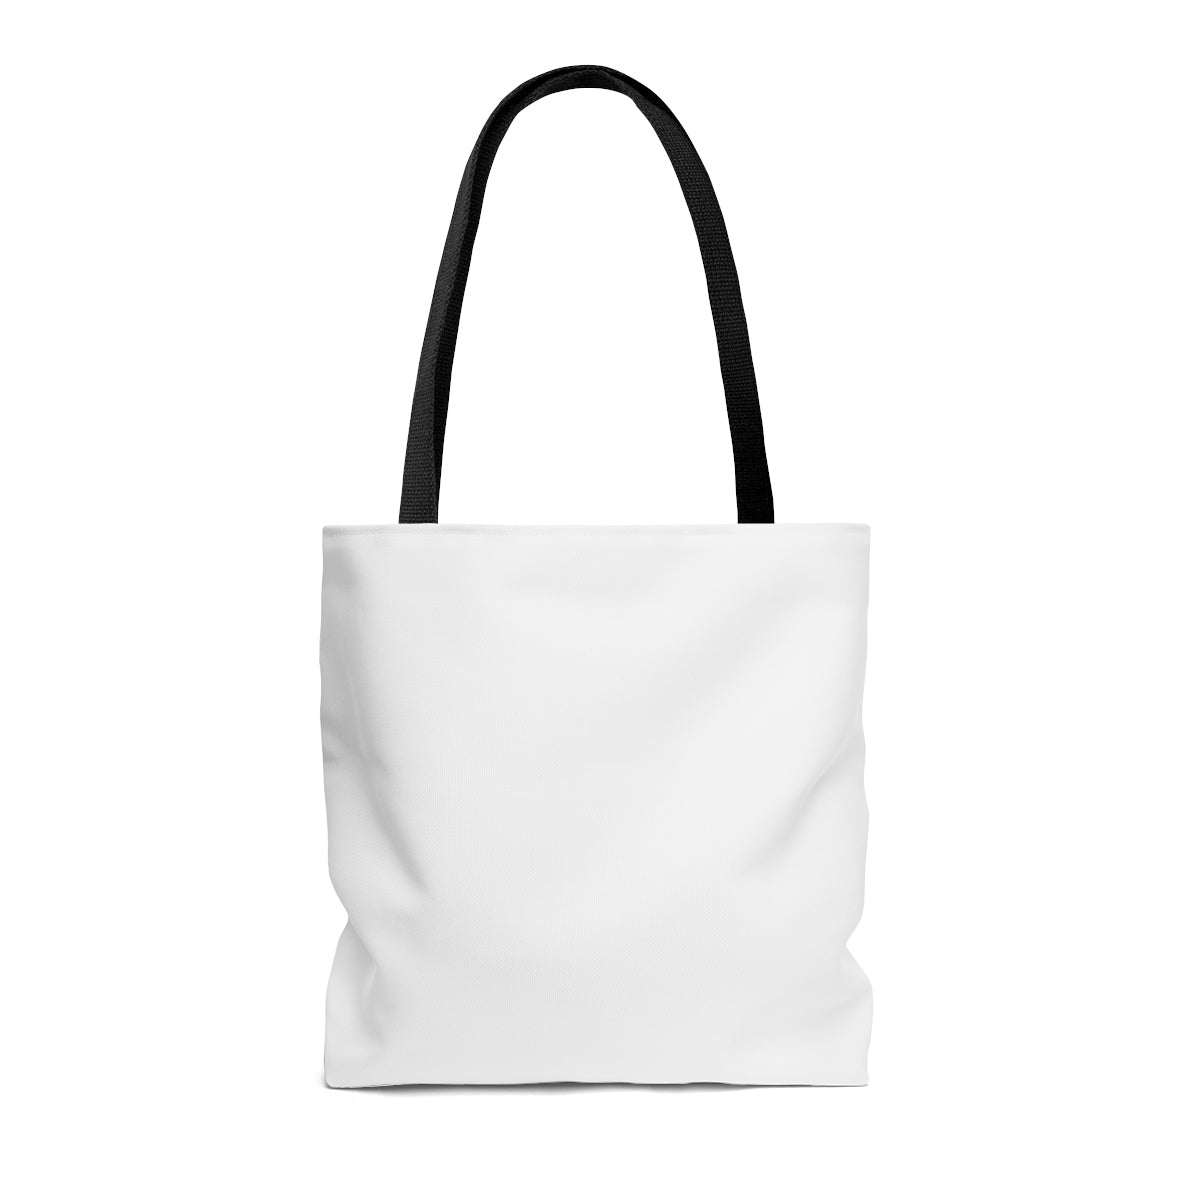 Confidence Tote Bag - Tara Price Art